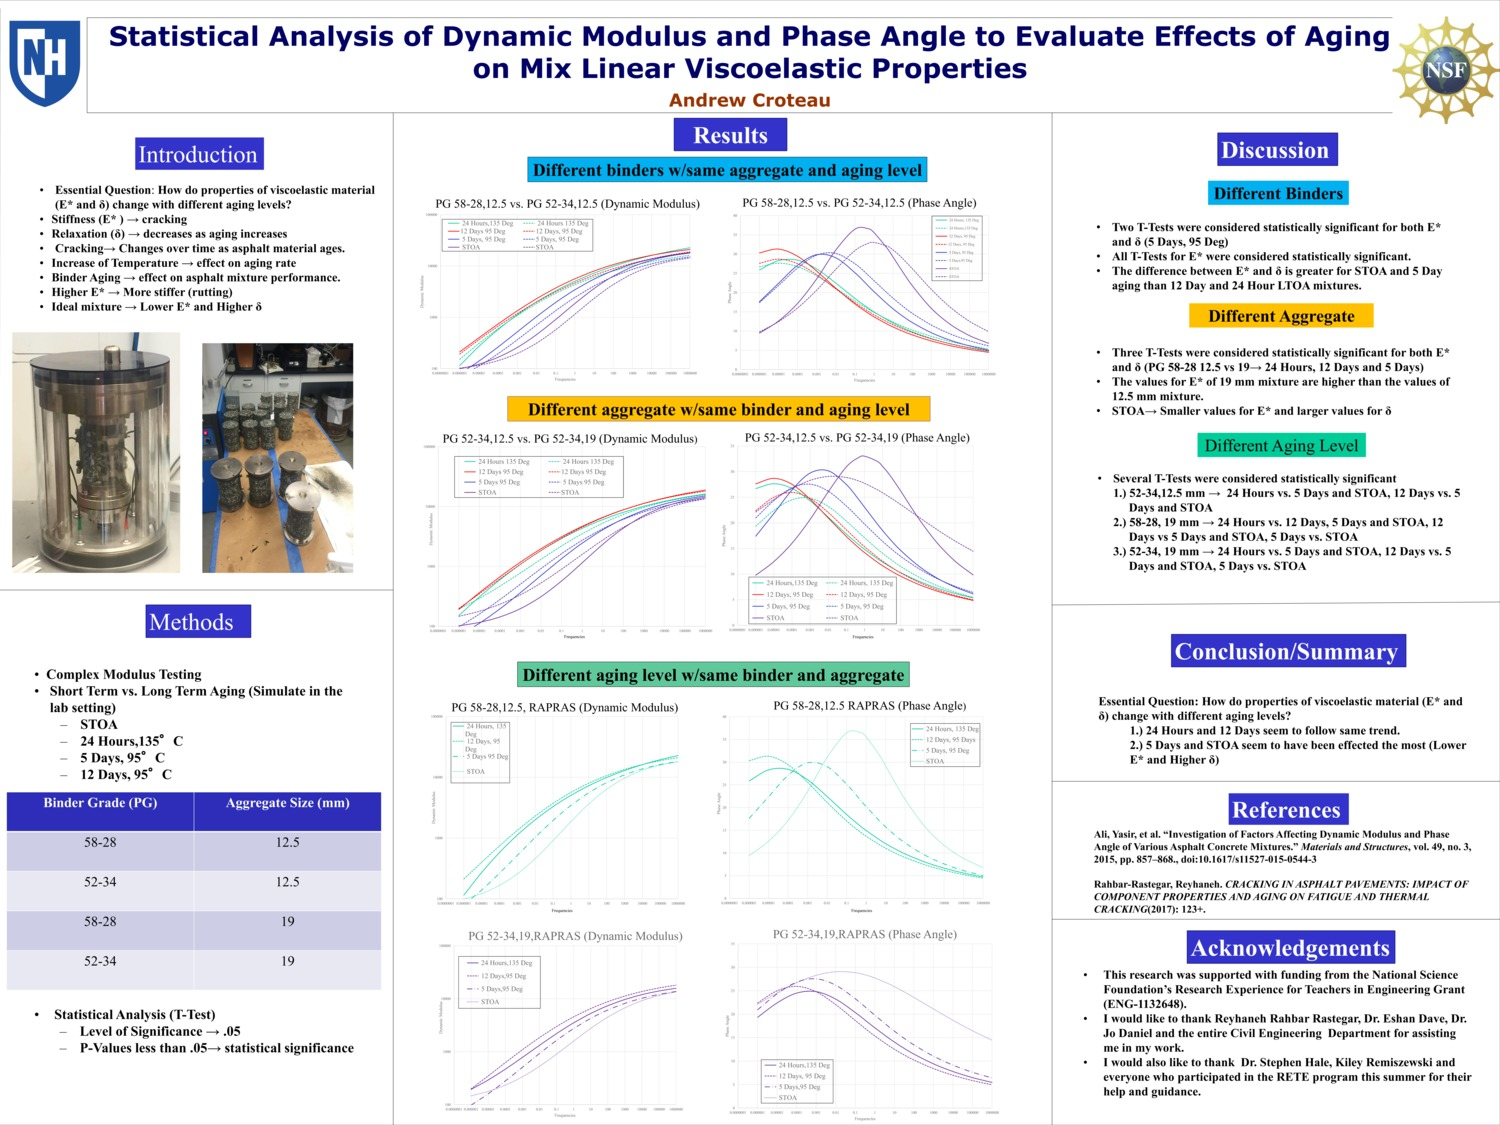 Statistical Analysis Of Dynamic Modulus And Phase Angle To Evaluate Effects Of Aging On Mix Linear Viscoelastic Properties by atg28